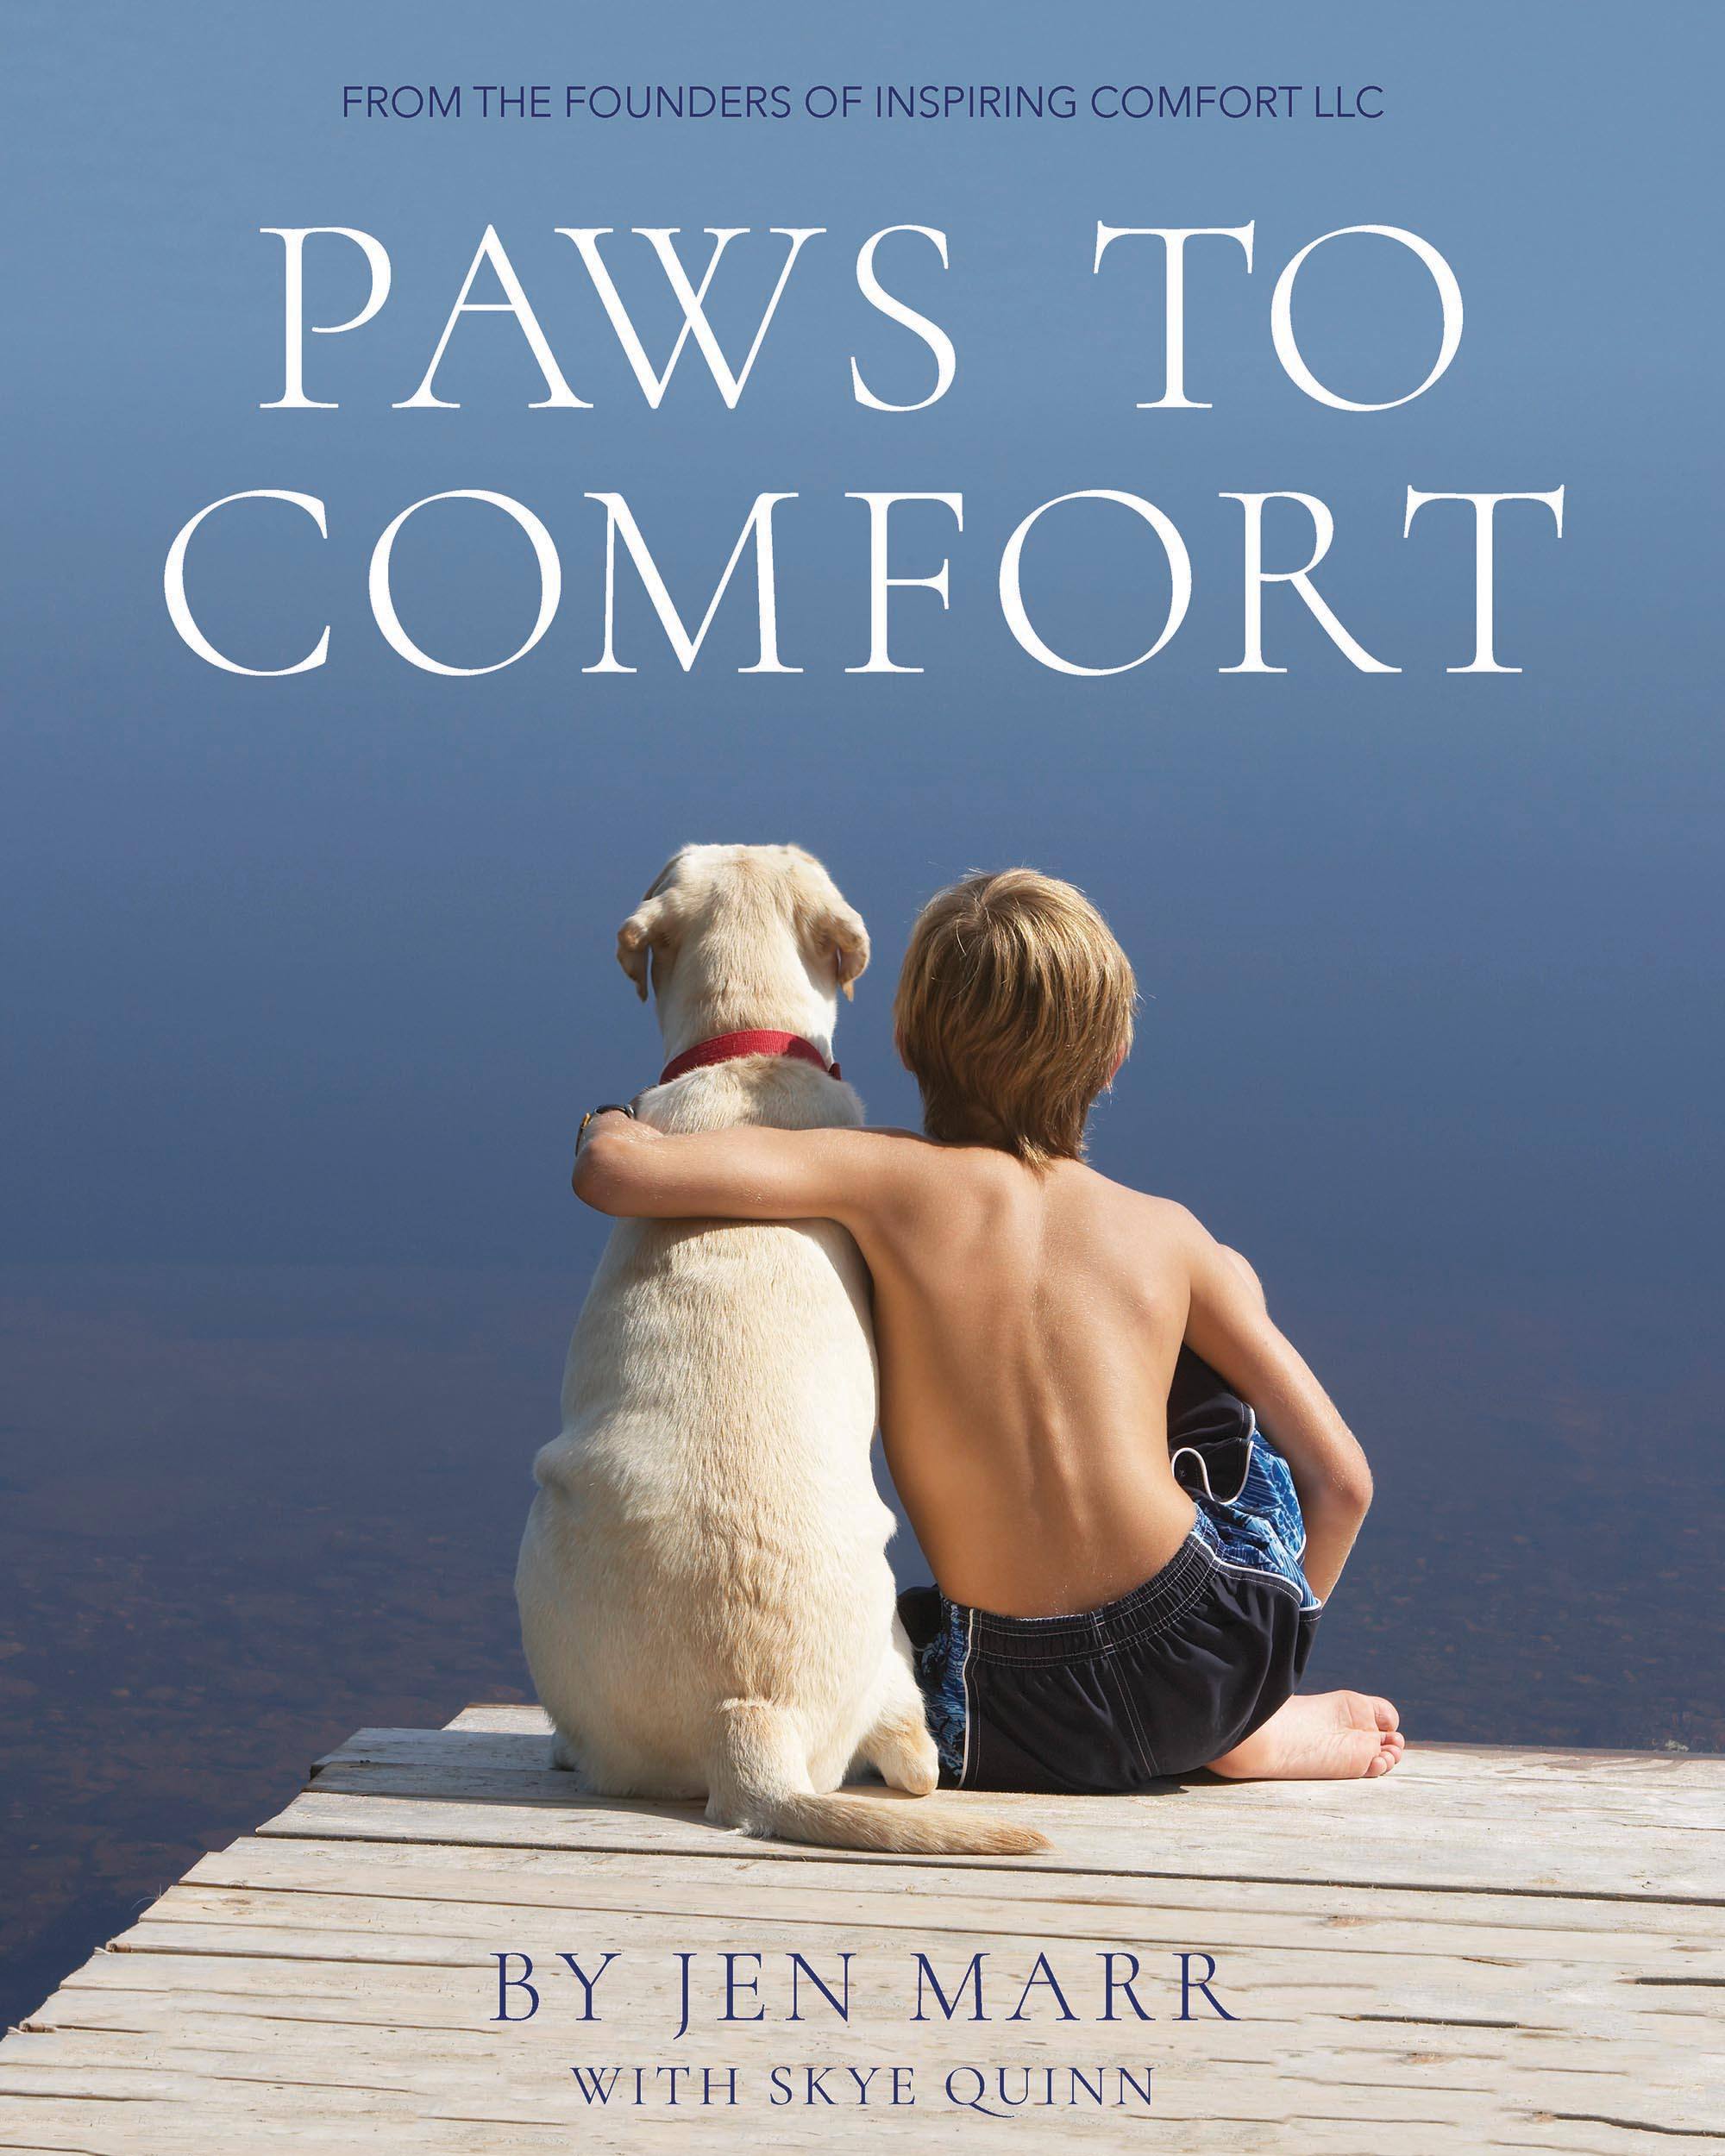 Paws to Comfort  by Jen Marr with Skye Quinn.  New Degree Press. Paperback & eBook. Publication date: November 2019